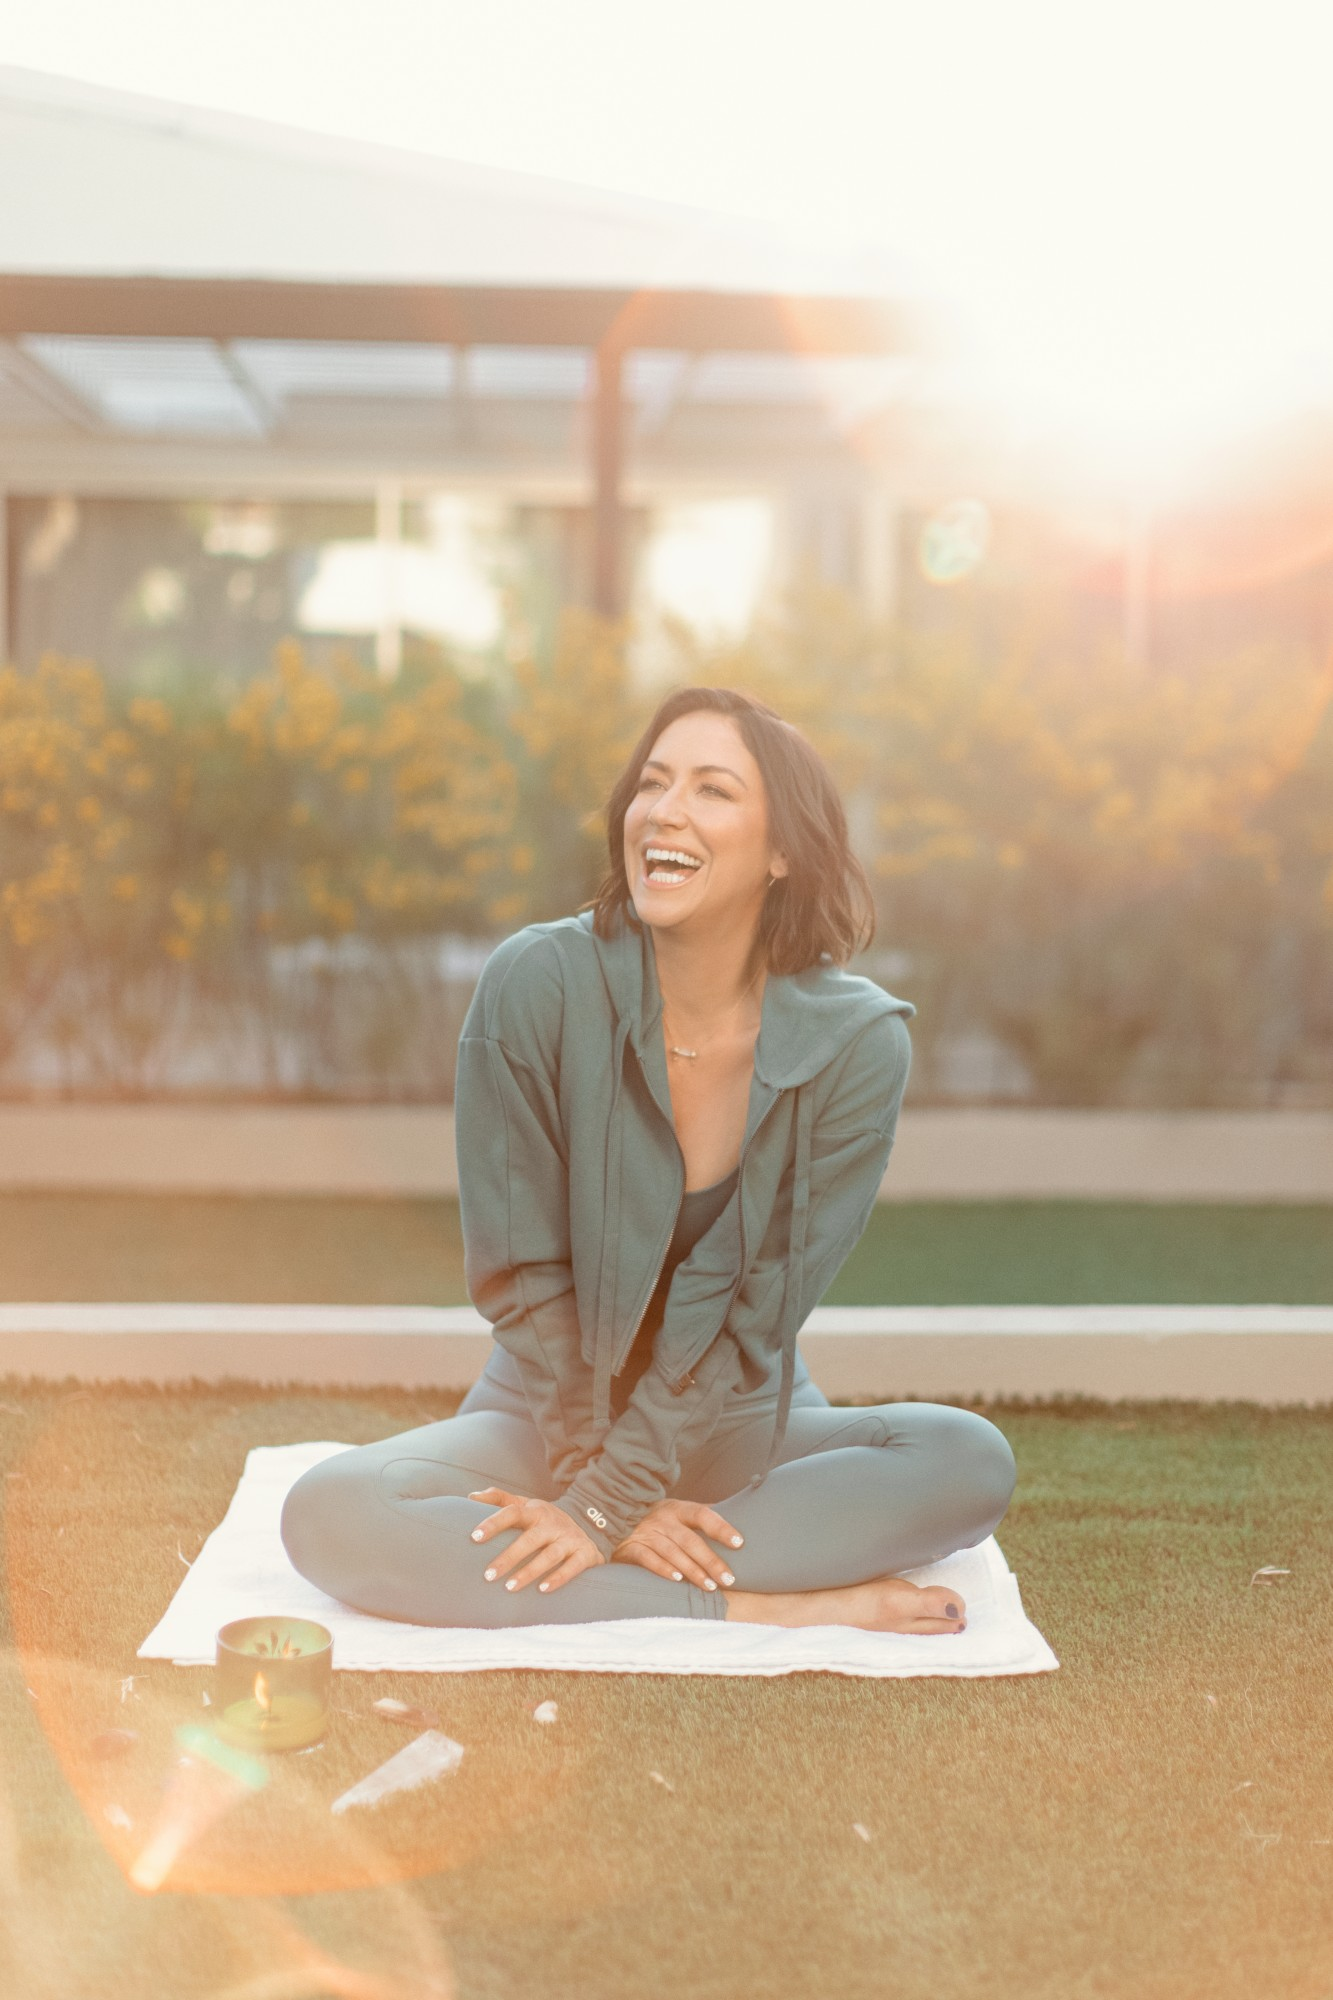 Join Karena Dawn from Tone It Up for a guided meditation to harness positive energy.